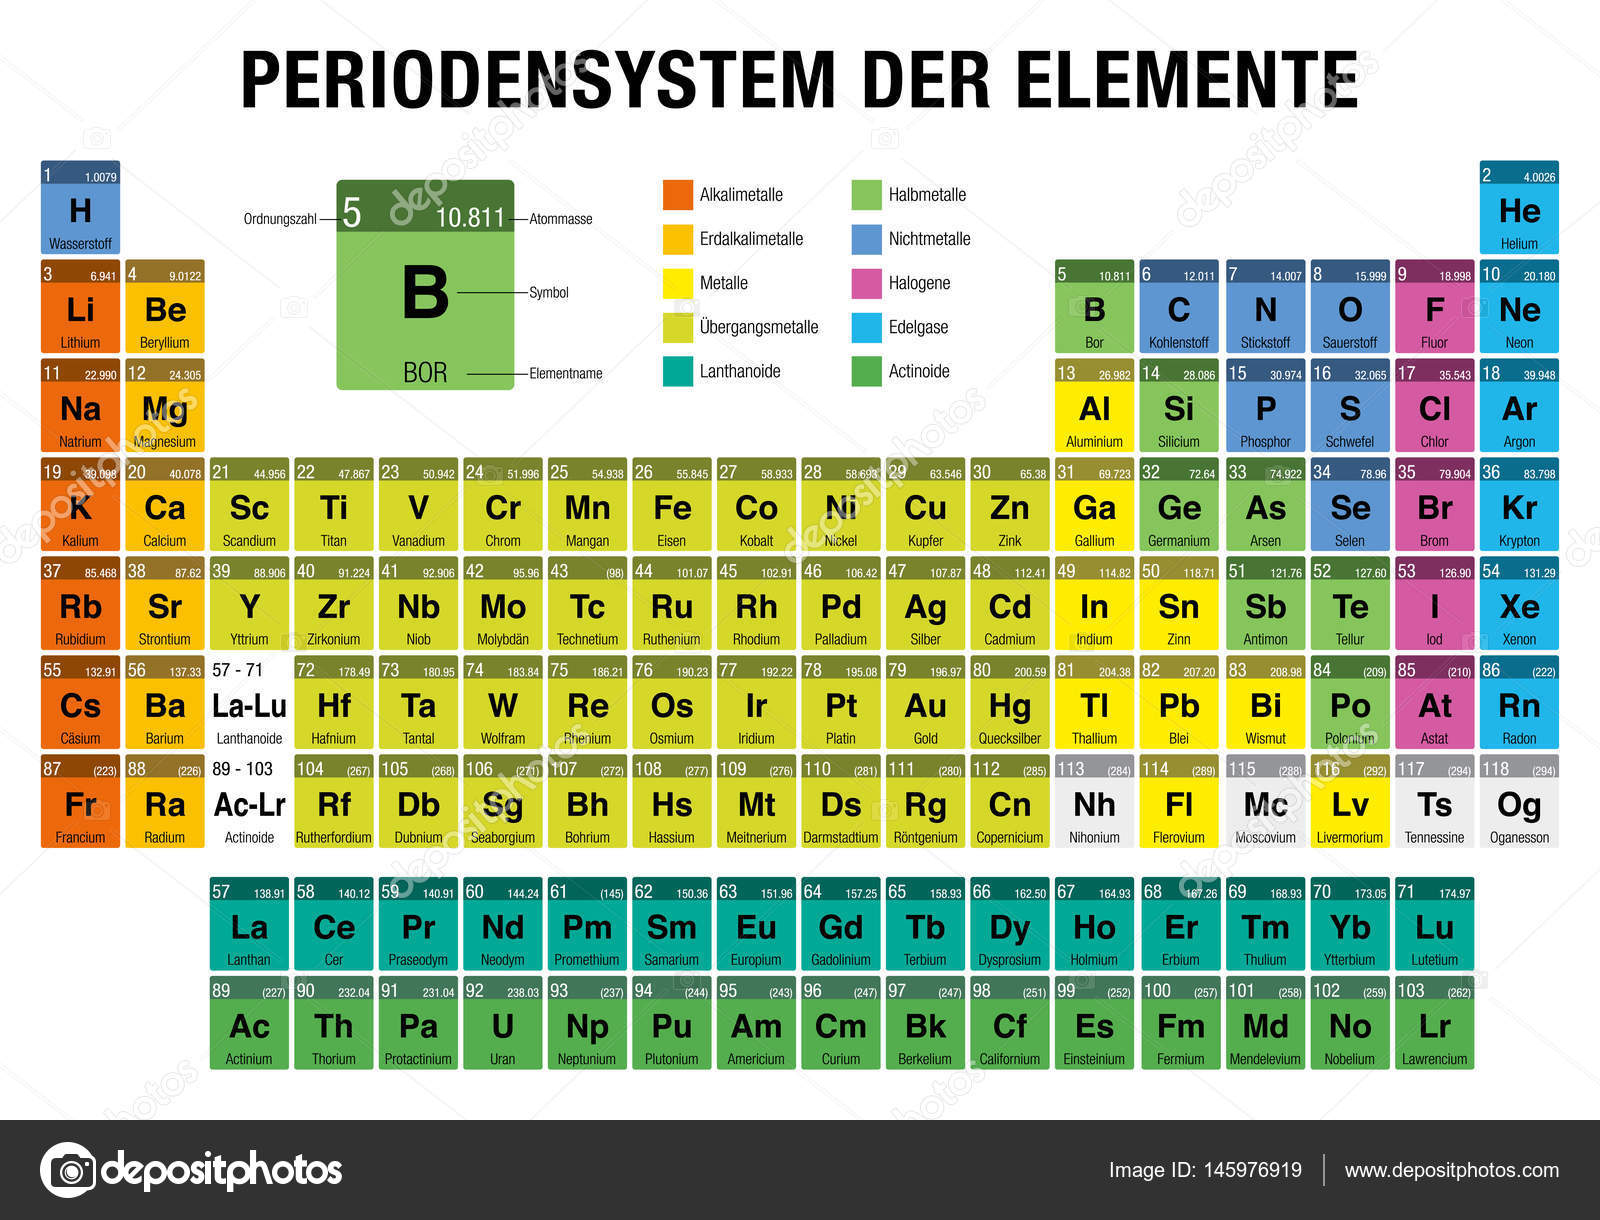 Periodensystem der elemente periodic table of elements in german periodensystem der elemente periodic table of elements in german language on white background with urtaz